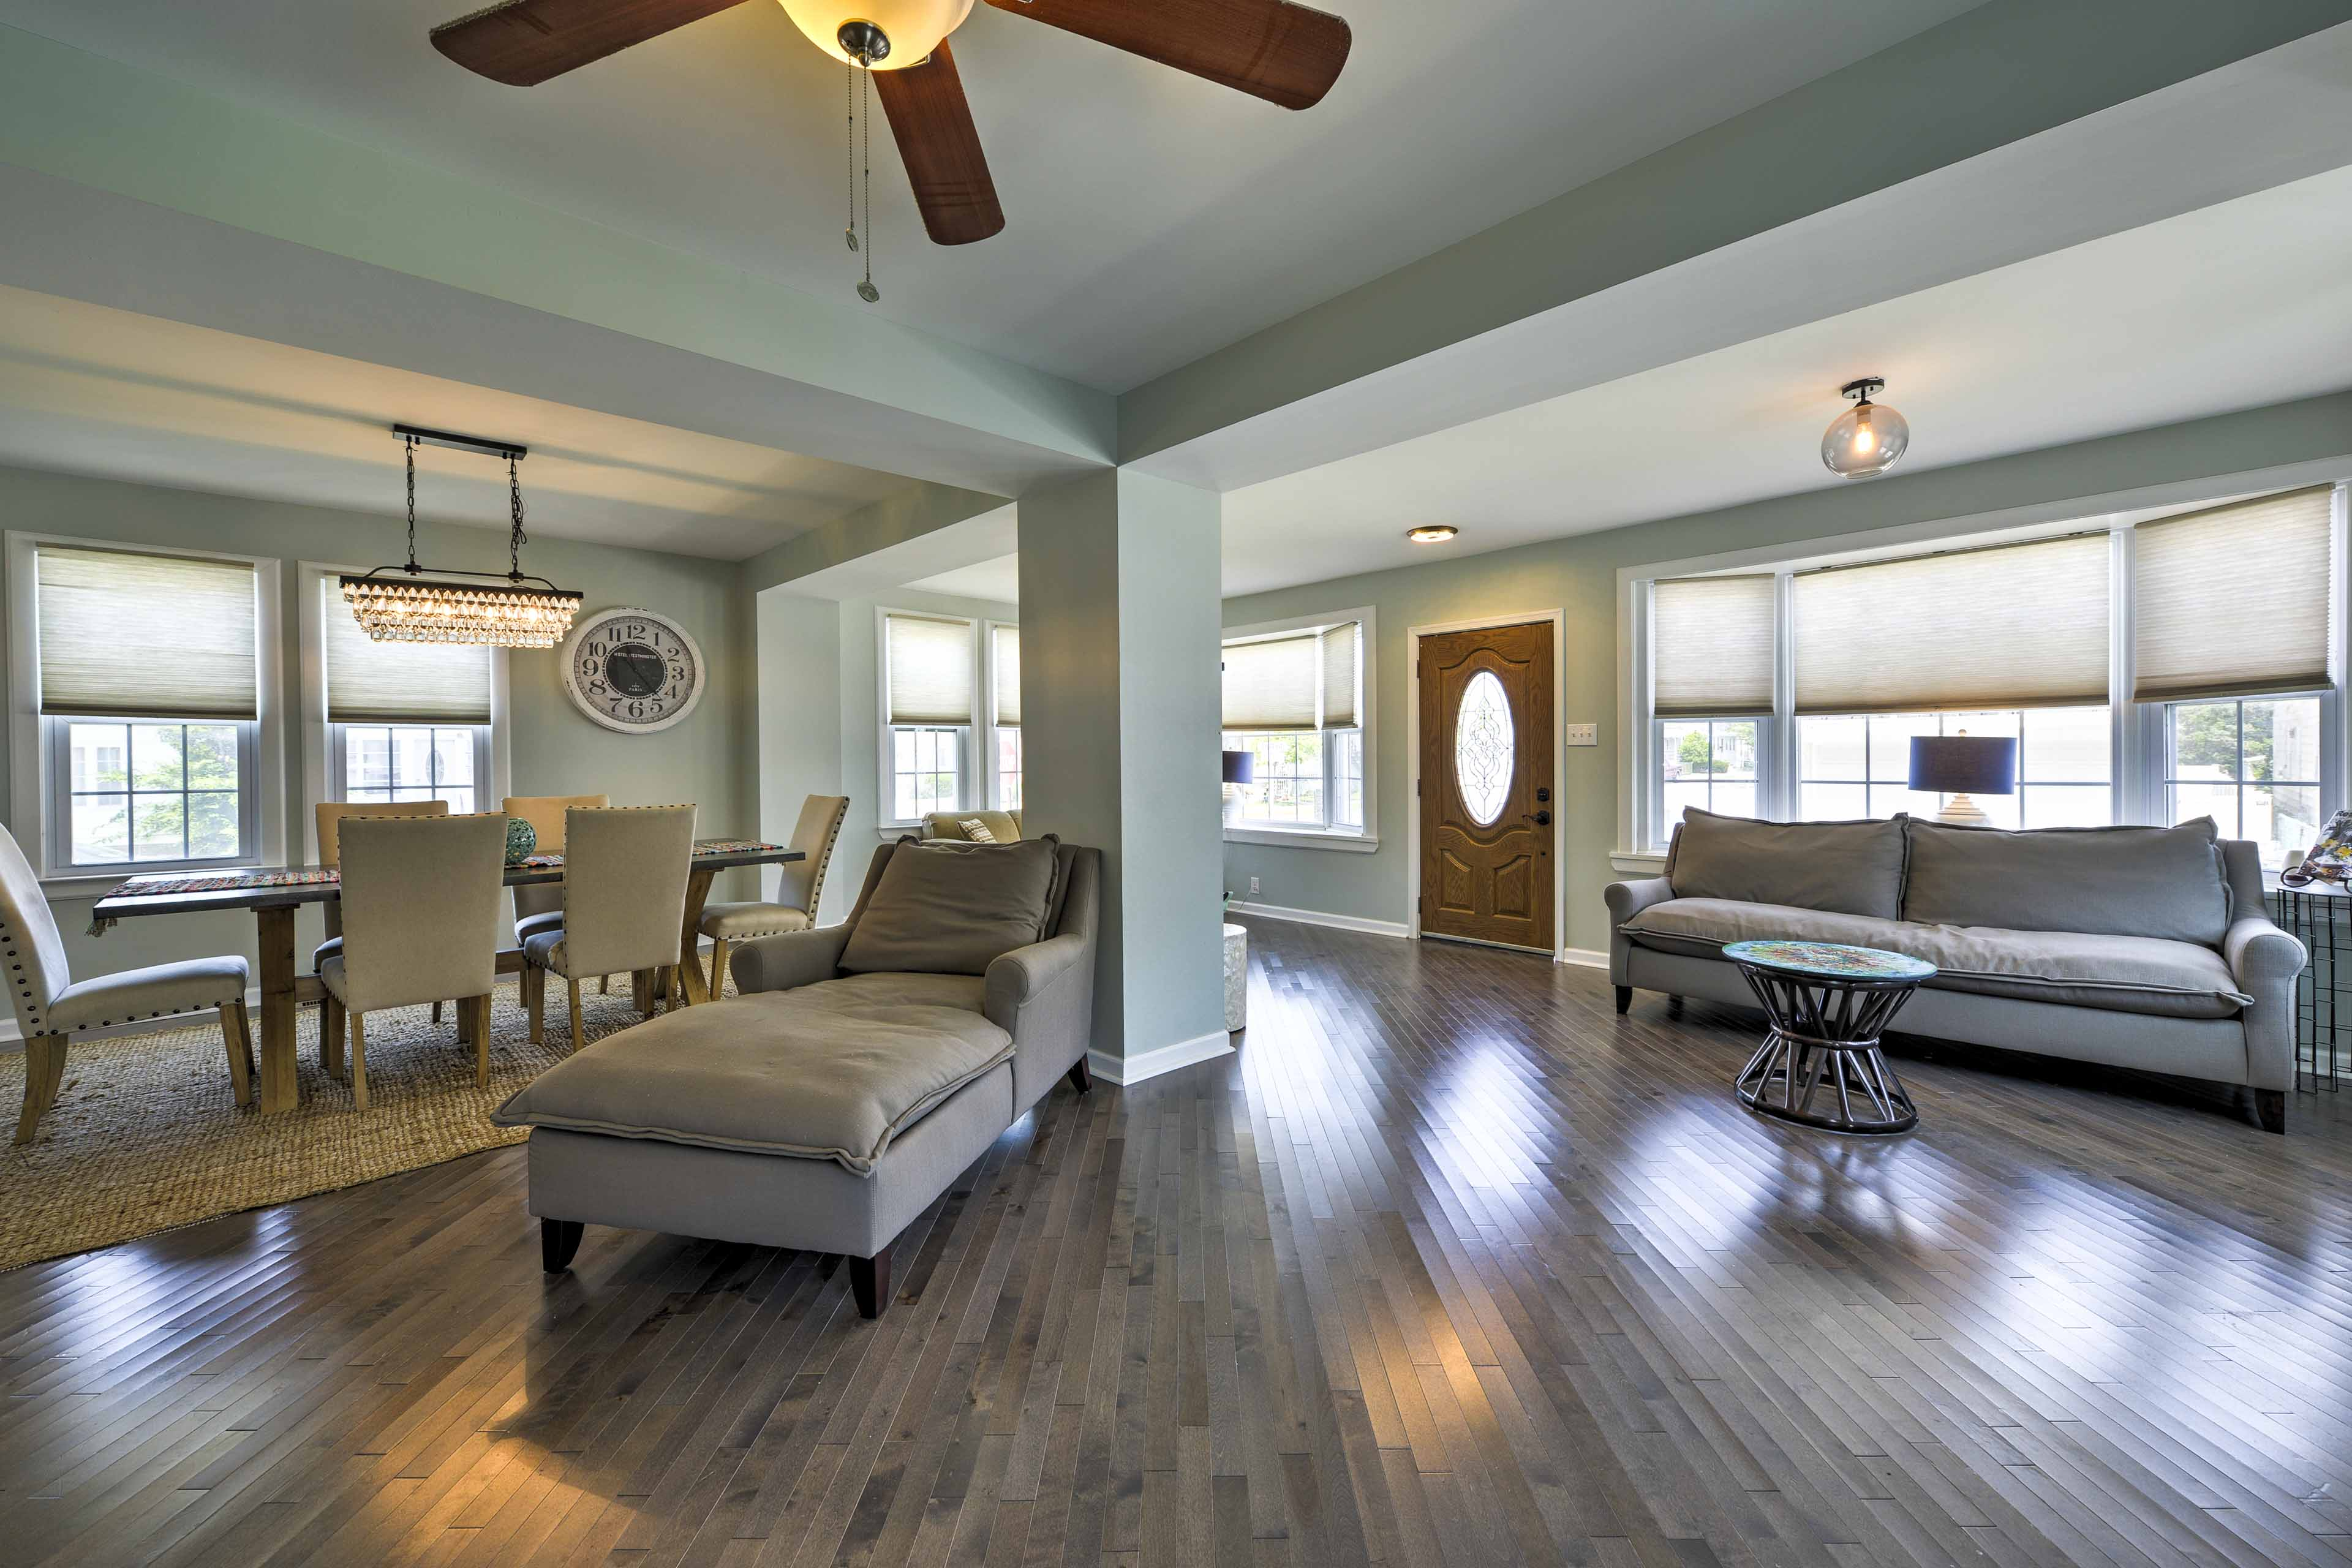 The main living area offers a great open layout